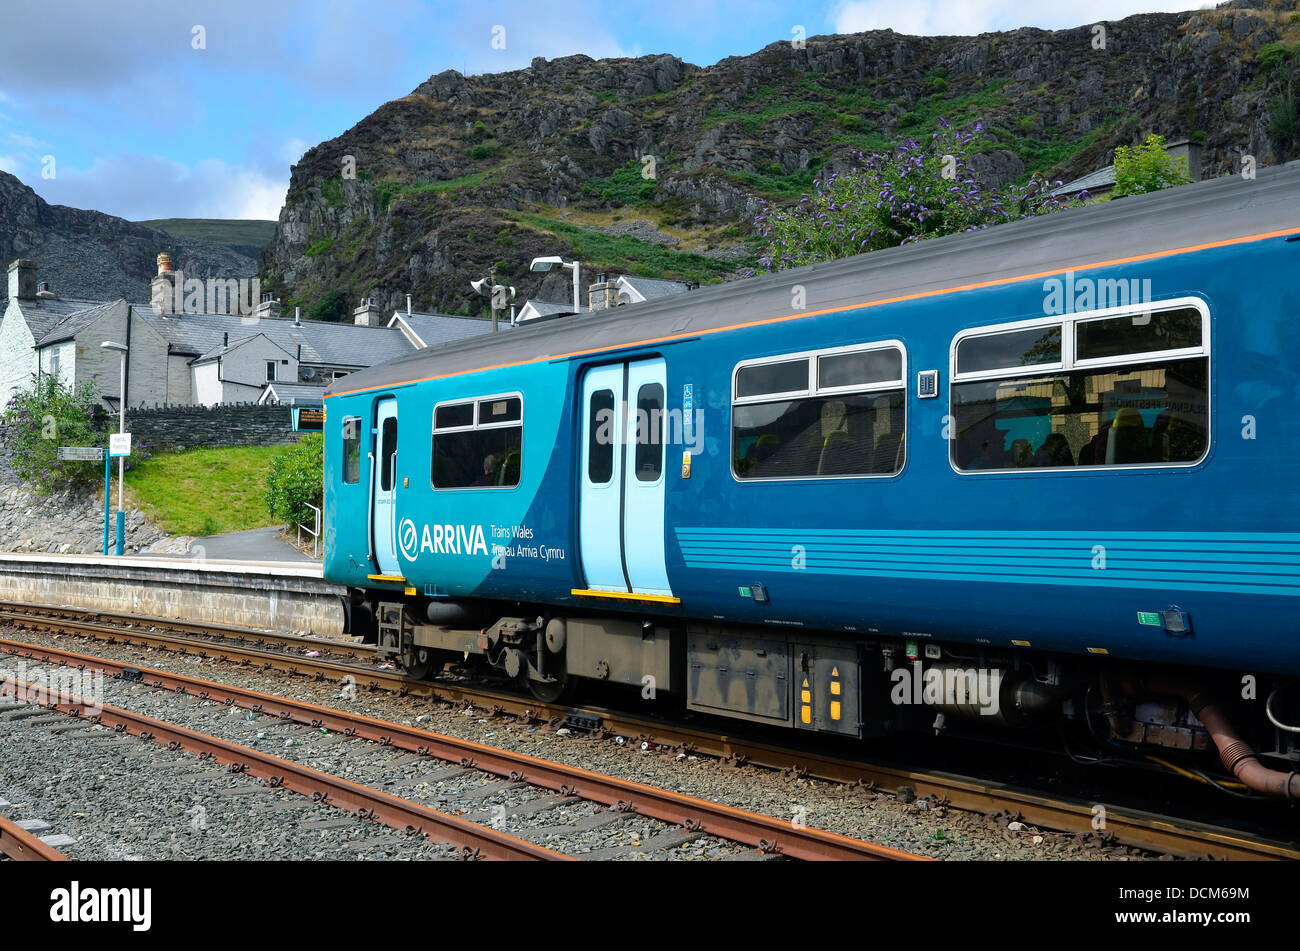 Arriva Trains Wales rules out extra capacity on busy Valleys line ...